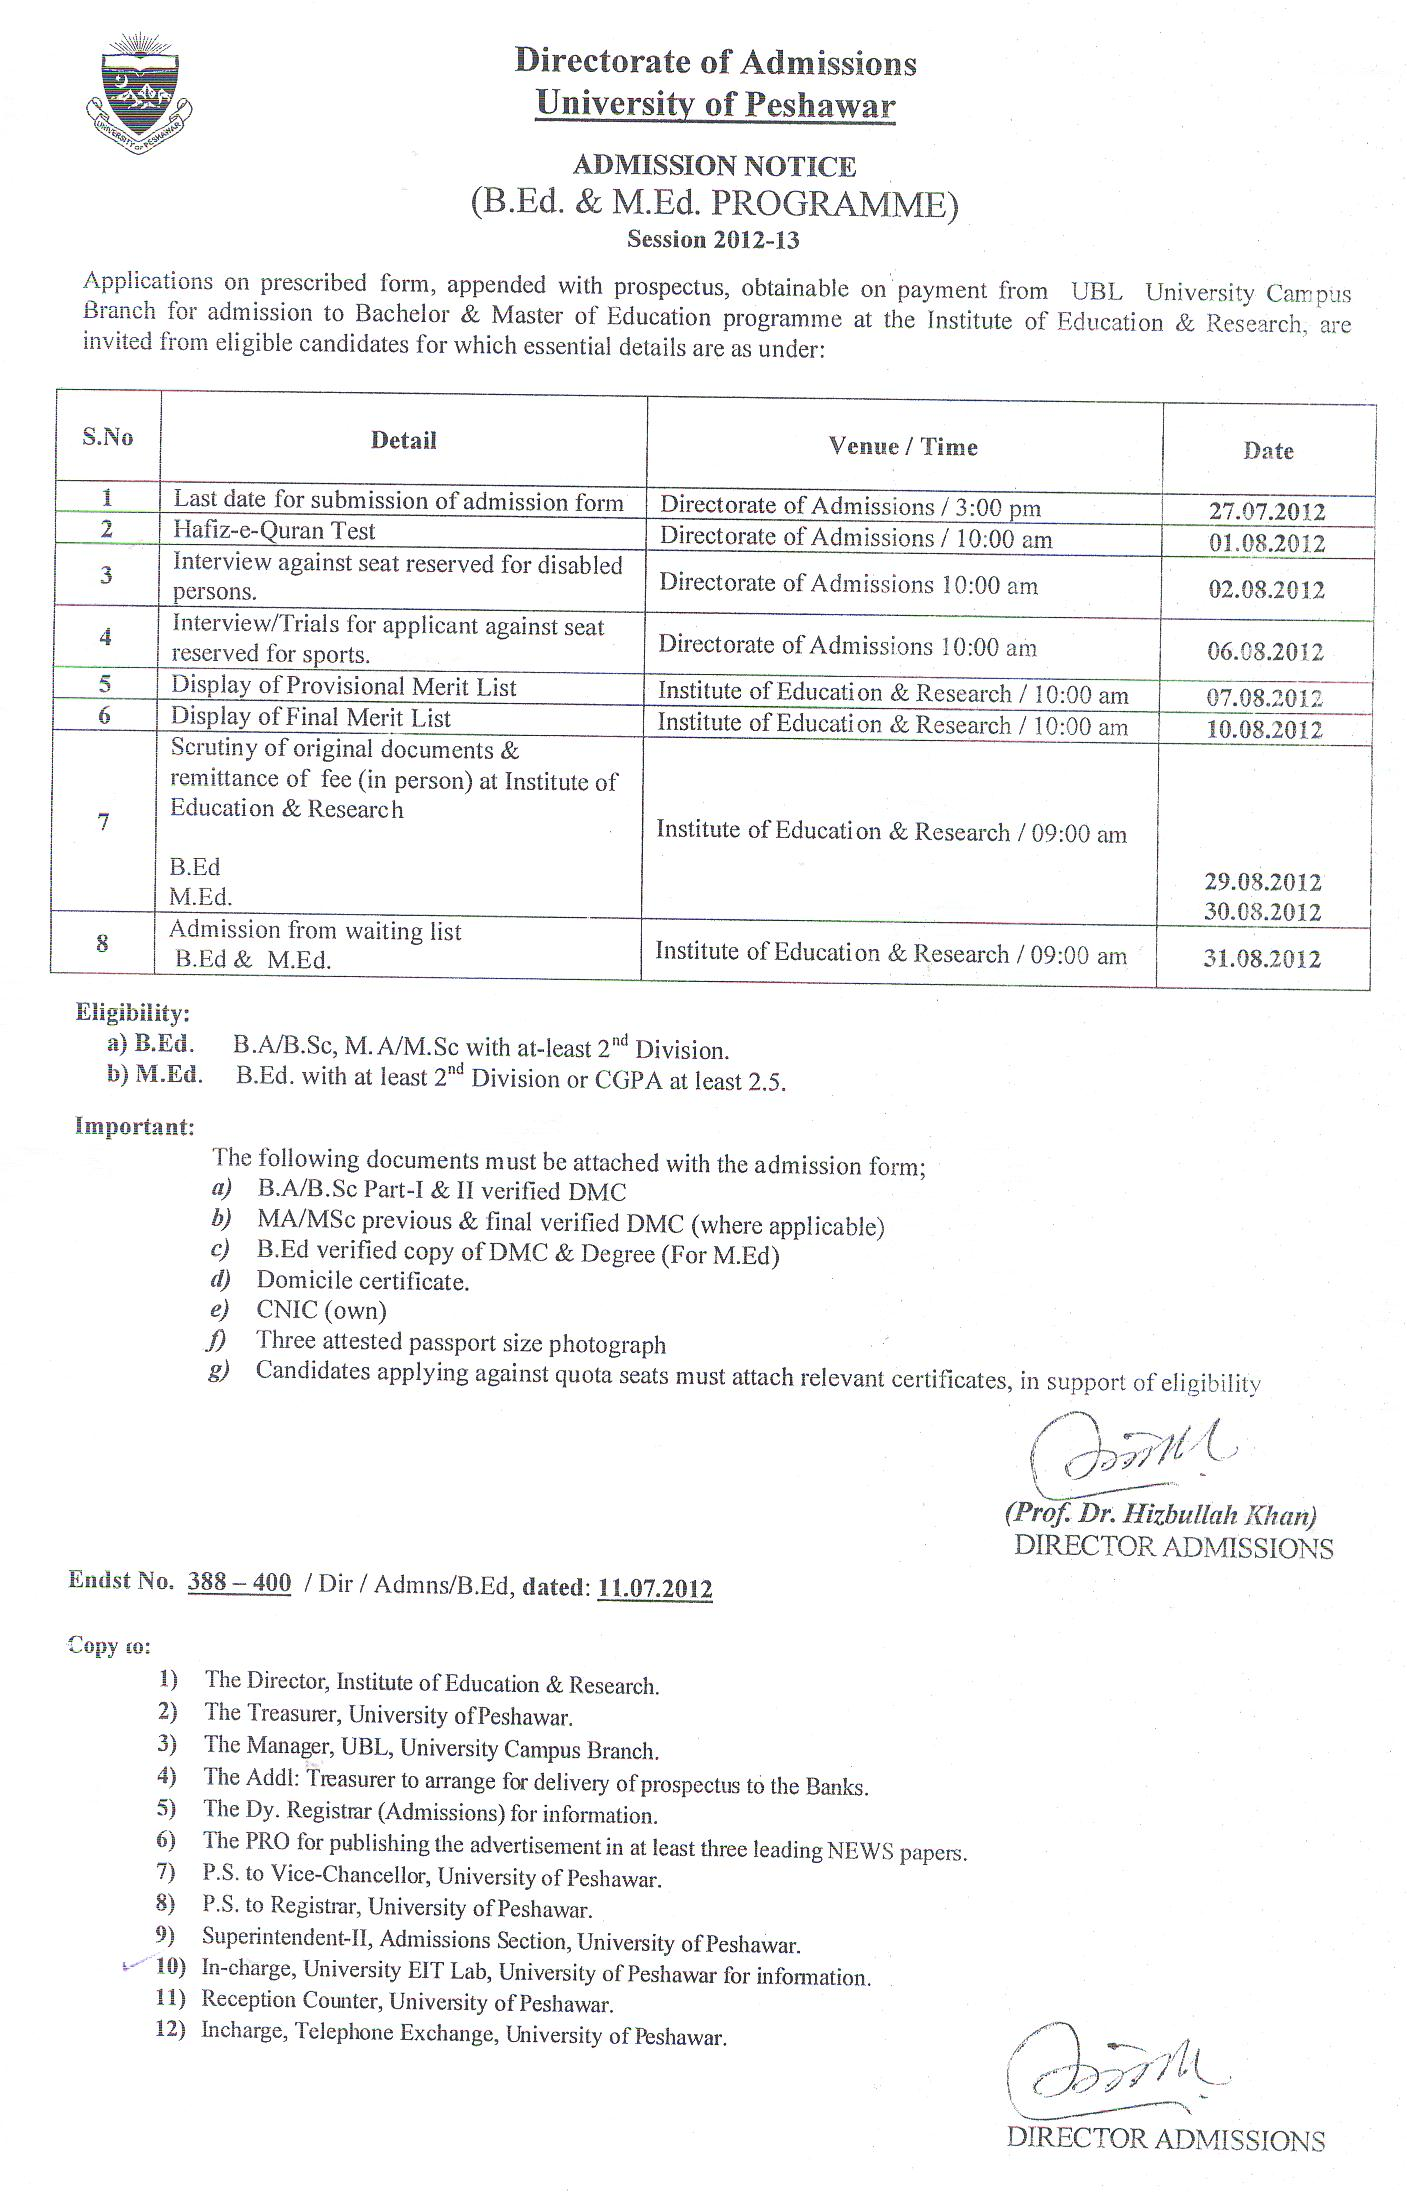 Peshawar University Admission B.Ed & M.Ed 2012